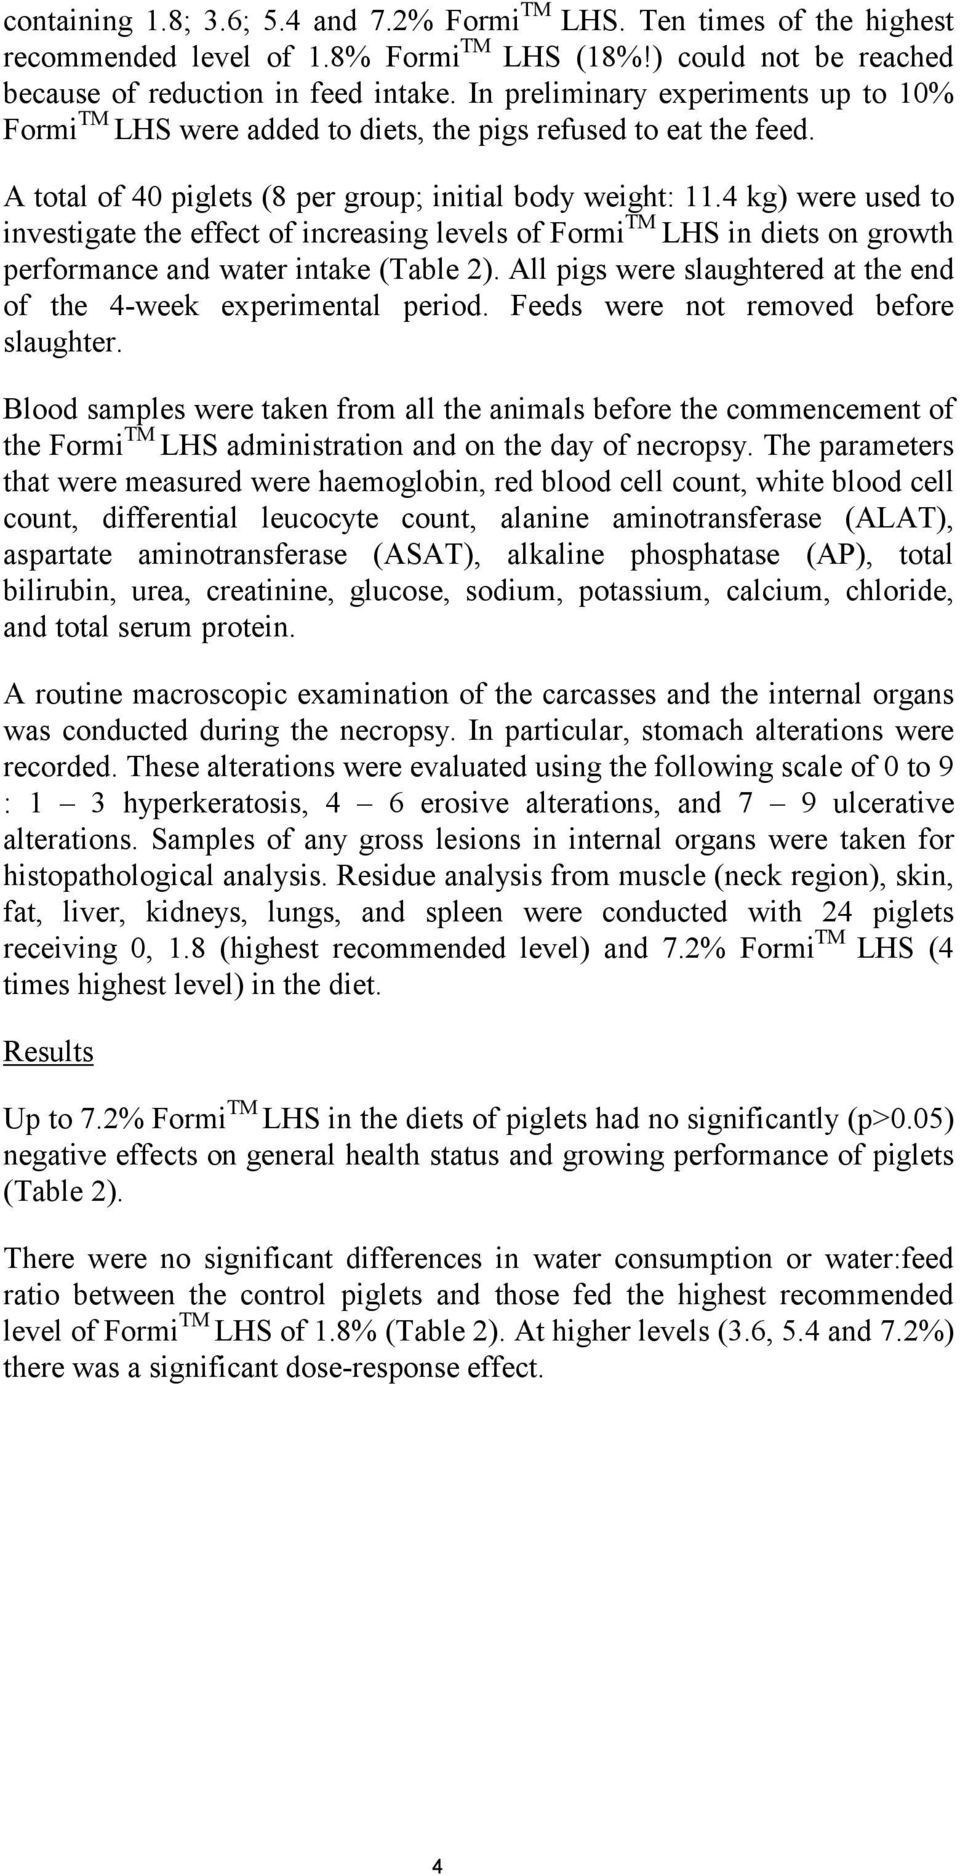 4 kg) were used to investigate the effect of increasing levels of Formi TM LHS in diets on growth performance and water intake (Table 2).